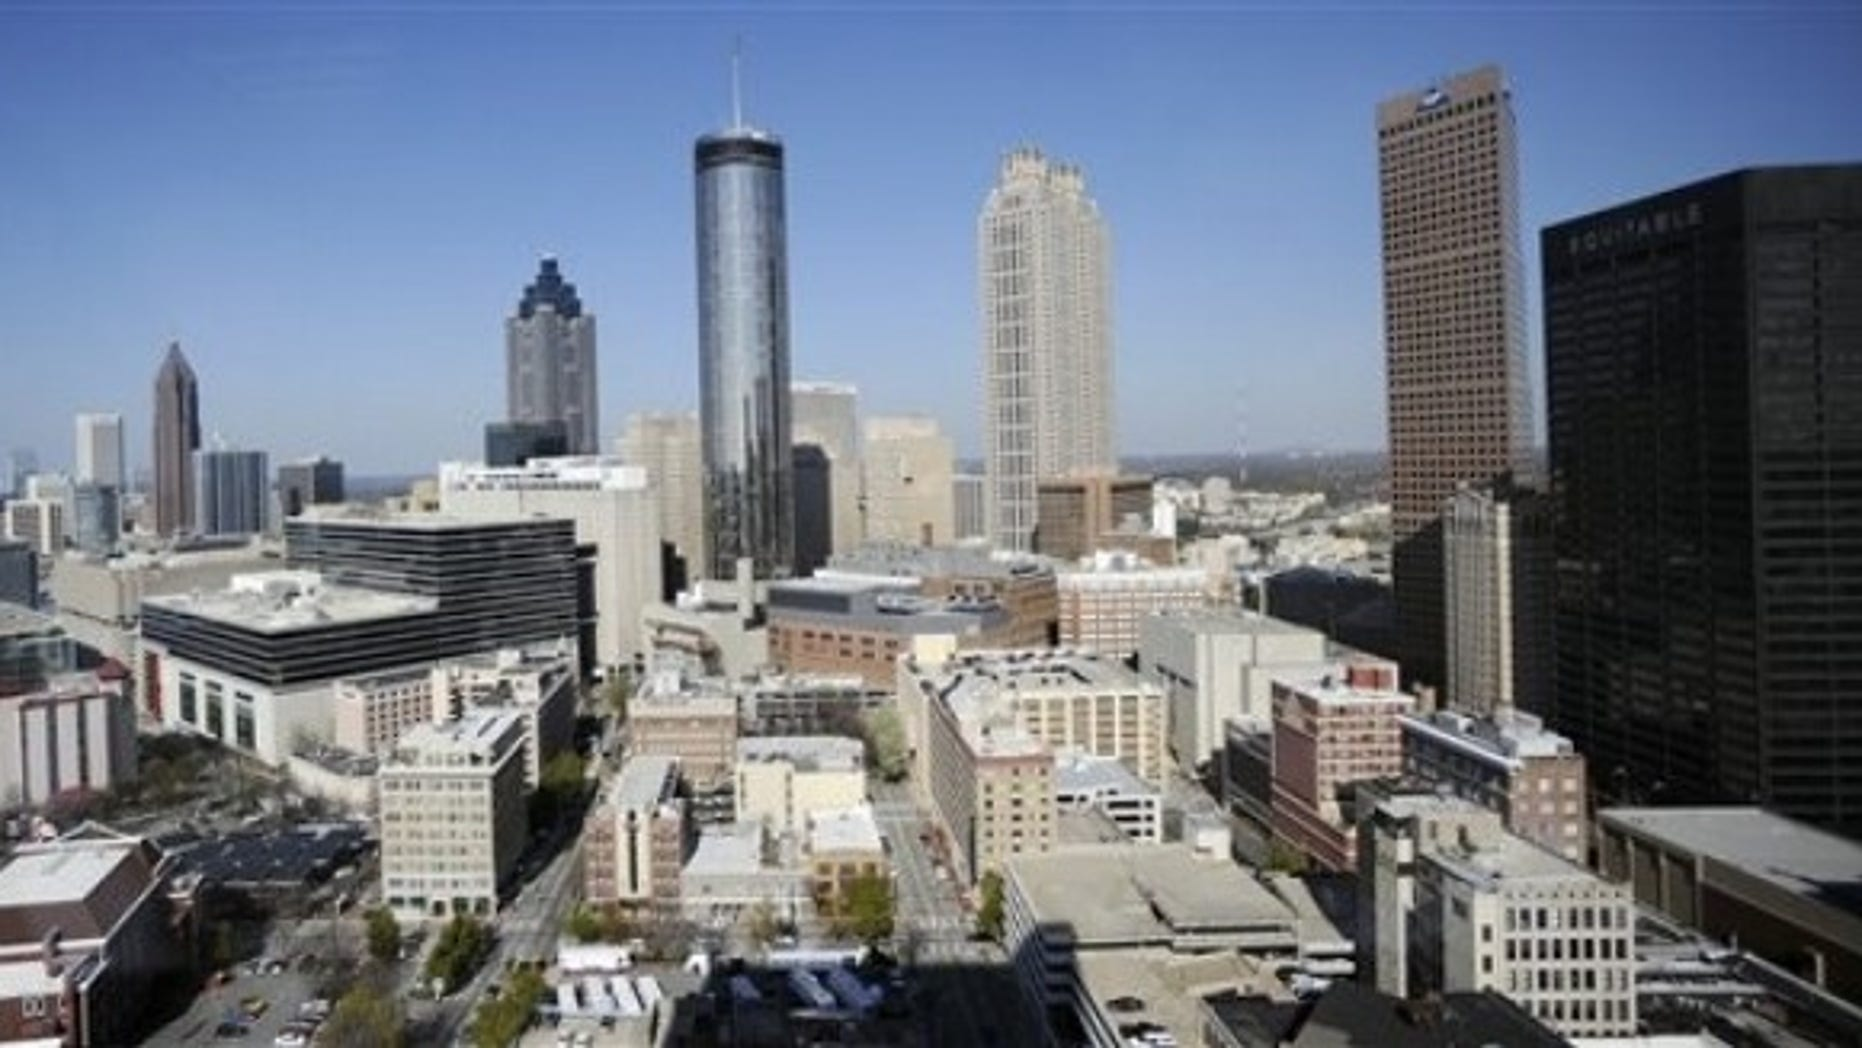 The Atlanta skyline is shown Thursday, March 17, 2011. According to census data released Thursday Atlanta's population slowed over the last 10 years with the city adding only 1 percent as people fled to the suburbs seeking better schools, cheaper homes and safer neighborhoods. (AP Photo/Mike Stewart)